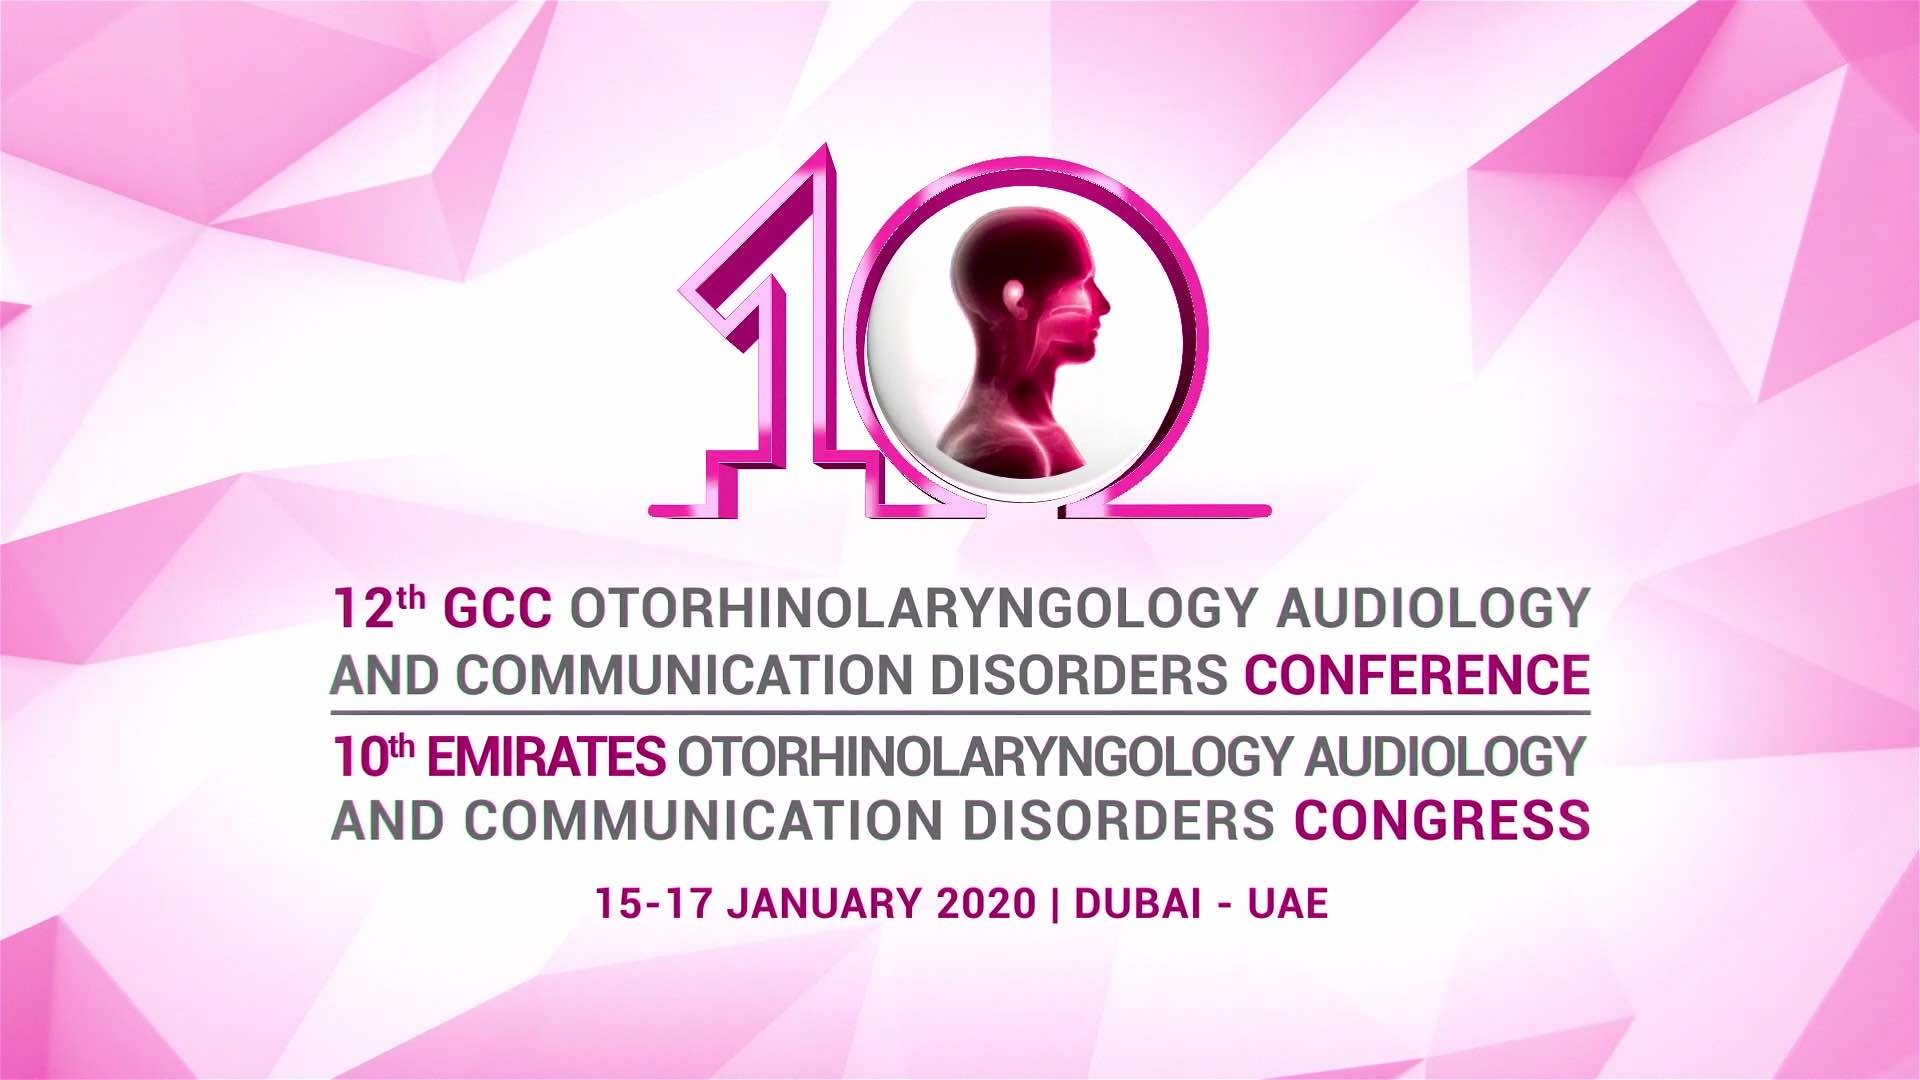 Emirates Otorhinolaryngology Audiology and Communication Disorders Congress_Part-01